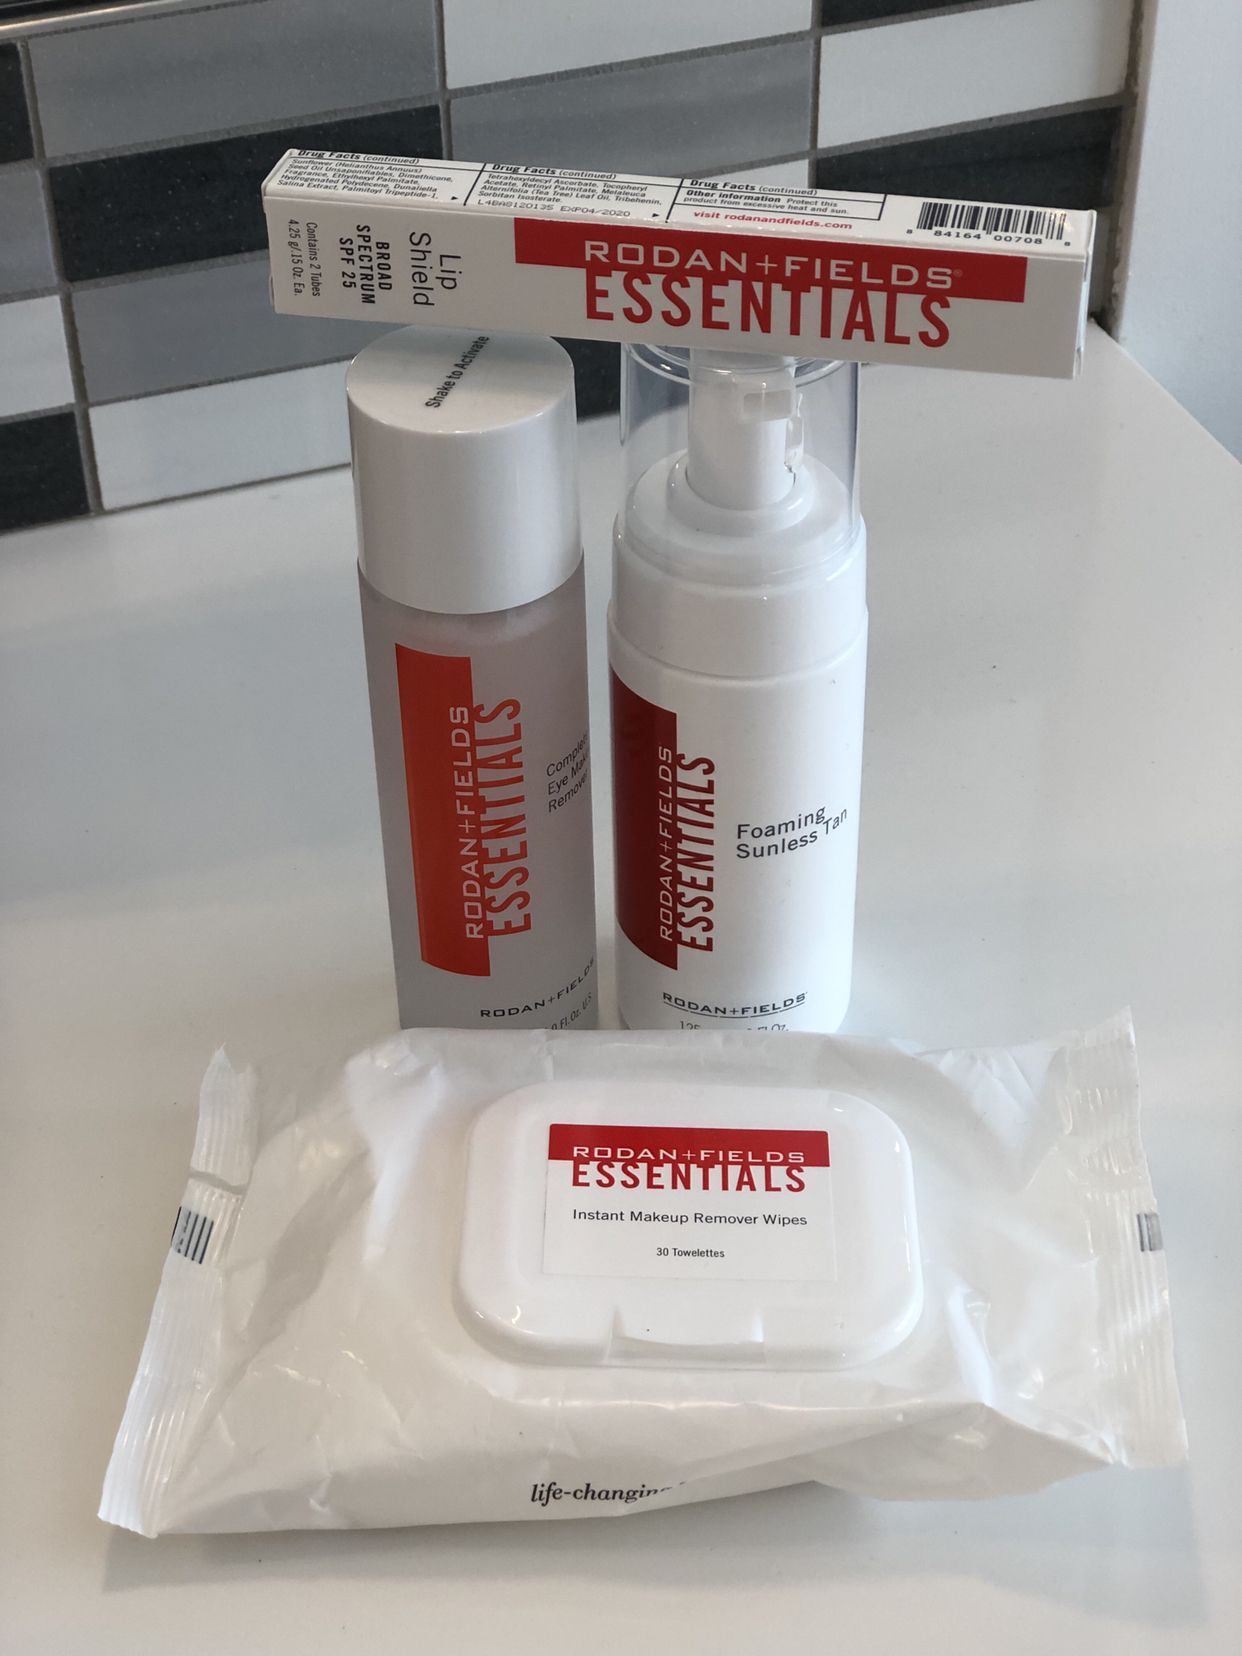 My favorite essentials lip shield, eye makeup remover and